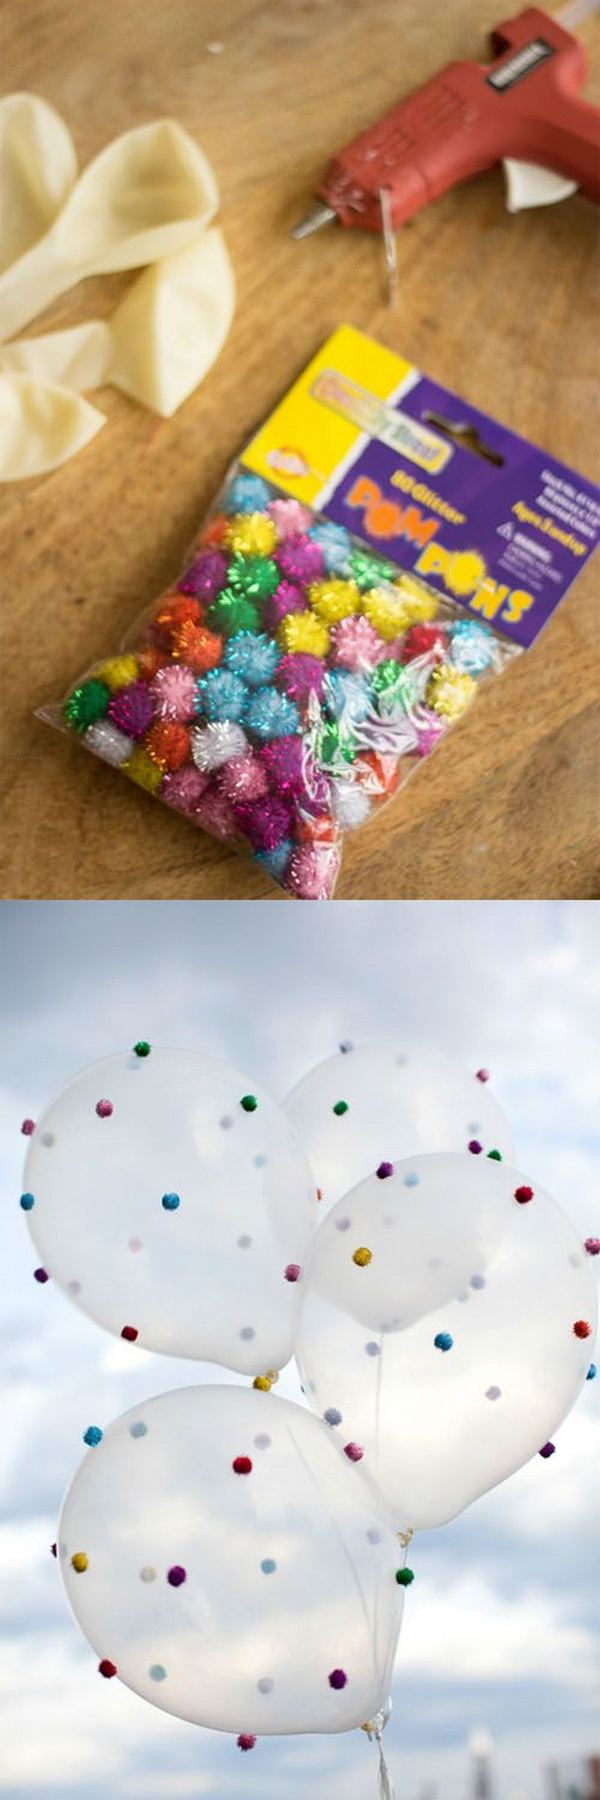 Mini Pom Pom Decorated Balloons.